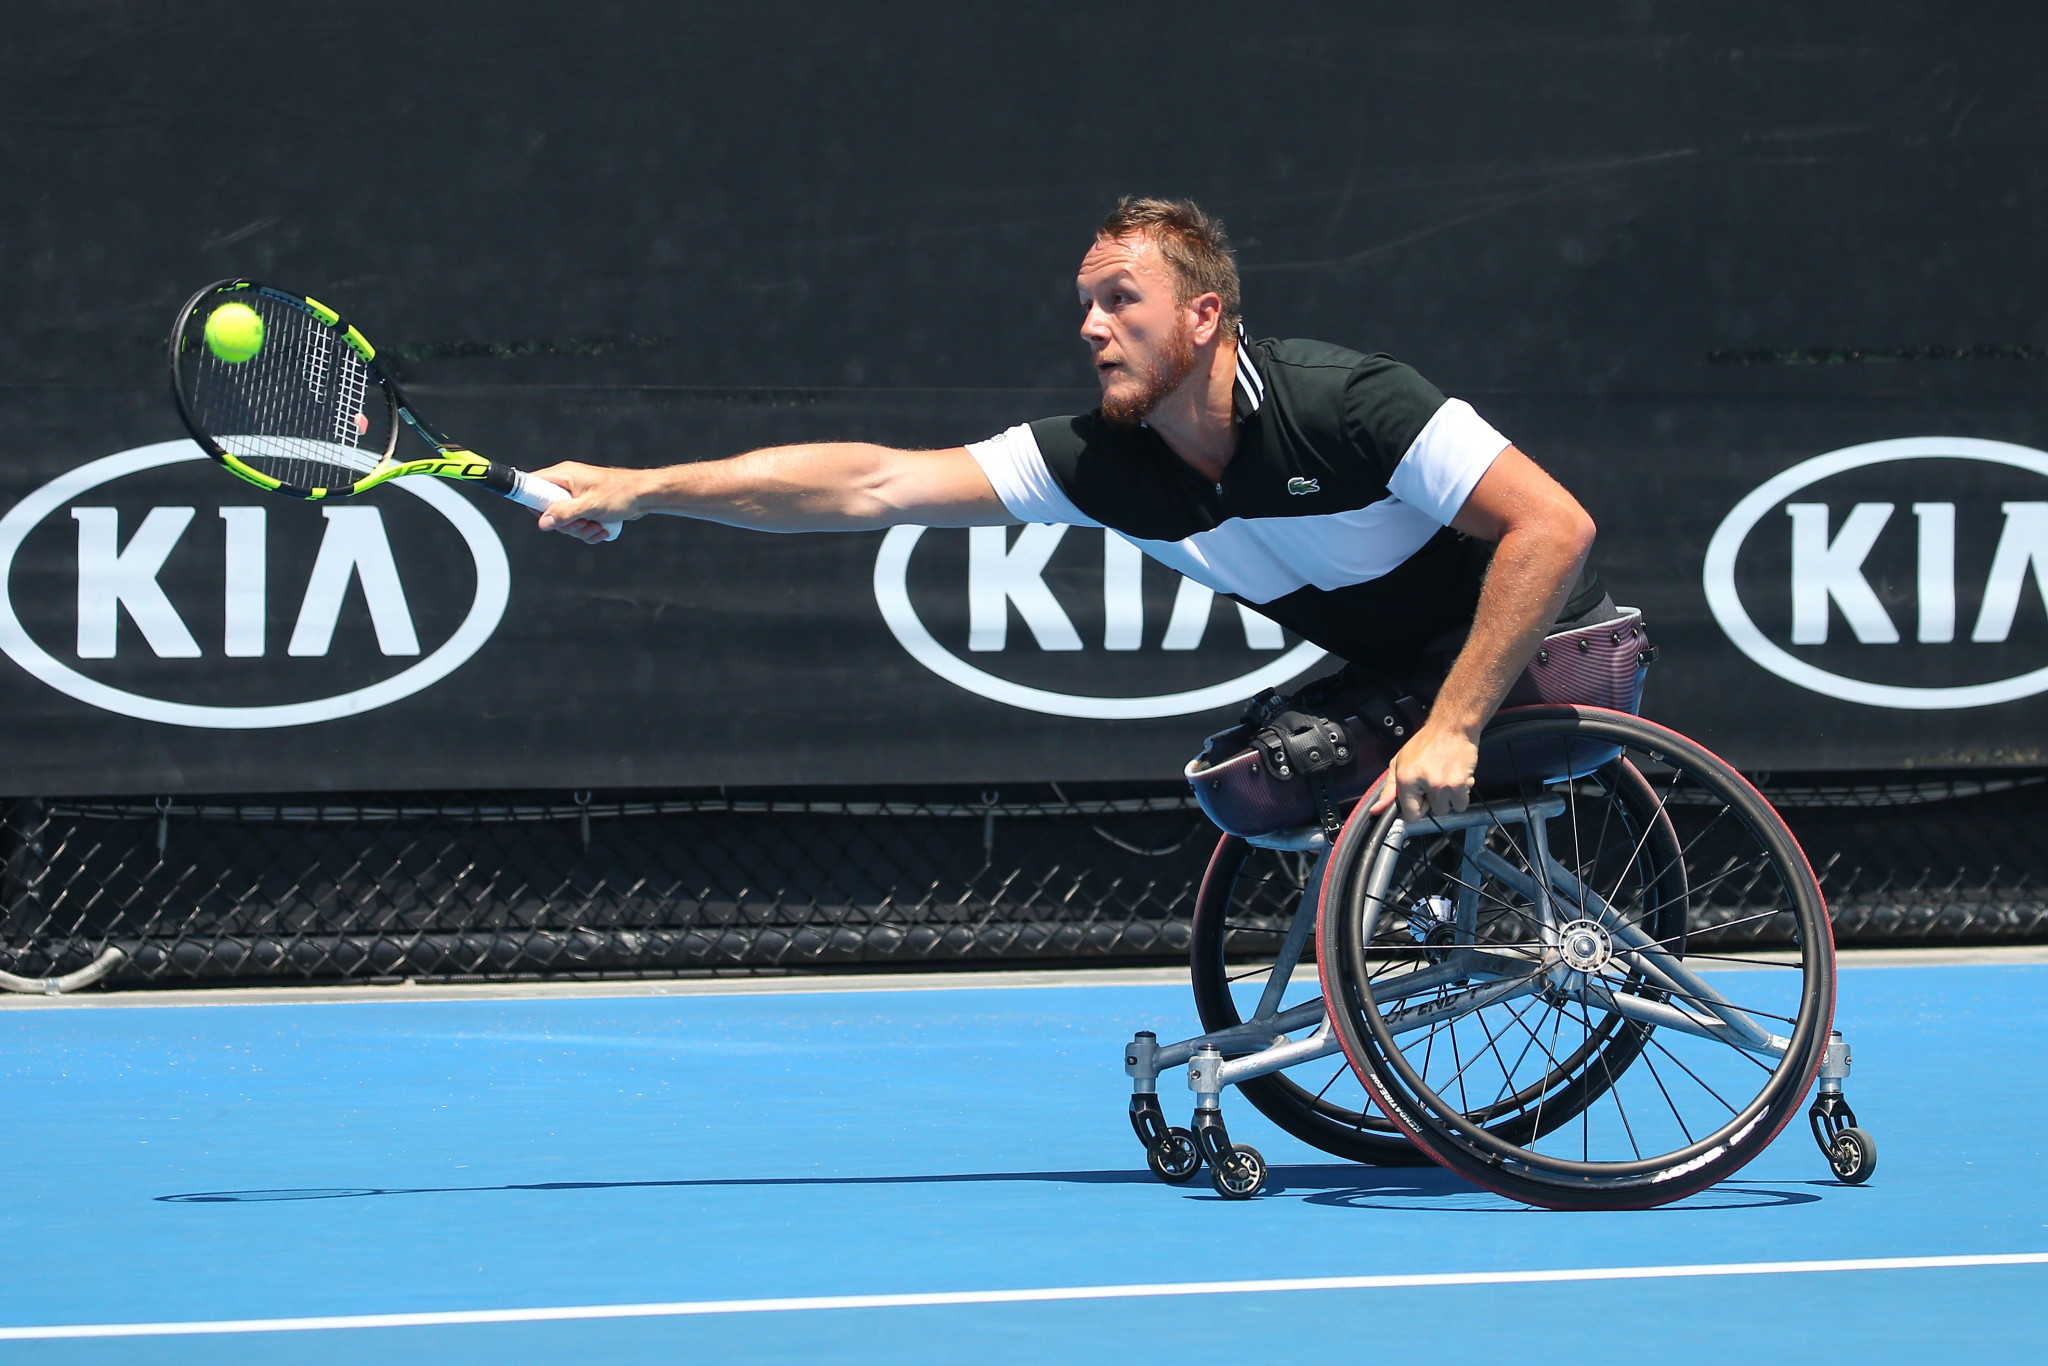 Fernandez suffers shock Australian Open wheelchair tennis defeat to lose world number one ranking